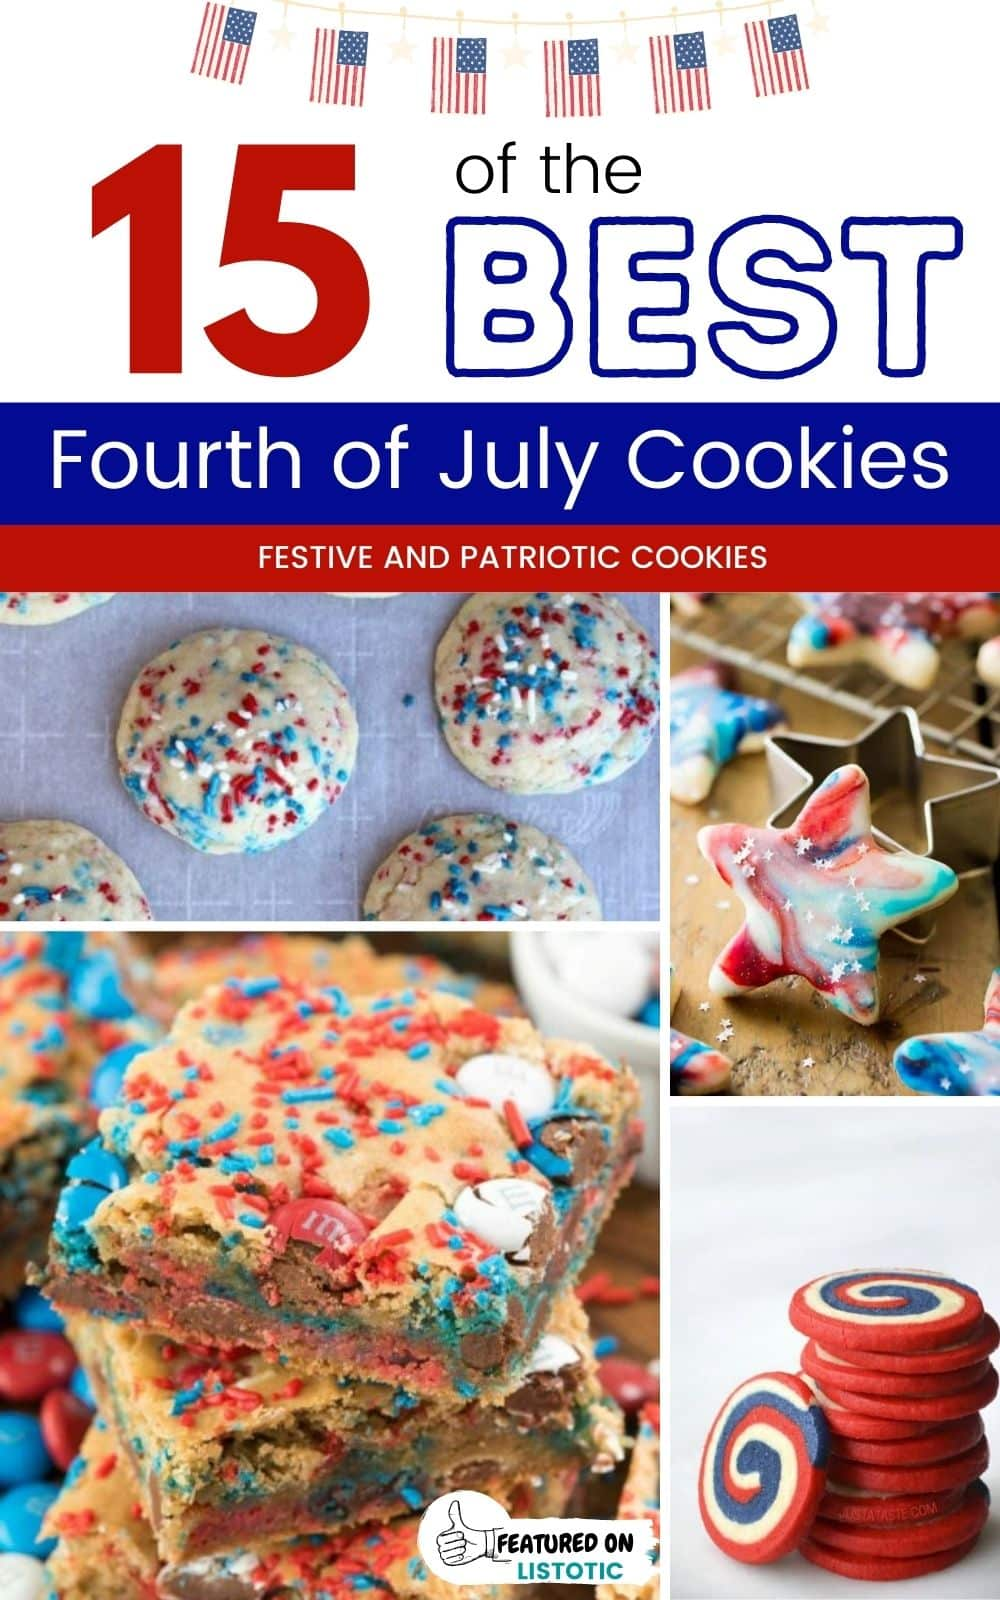 15 of the best fourth of july cookies recipes